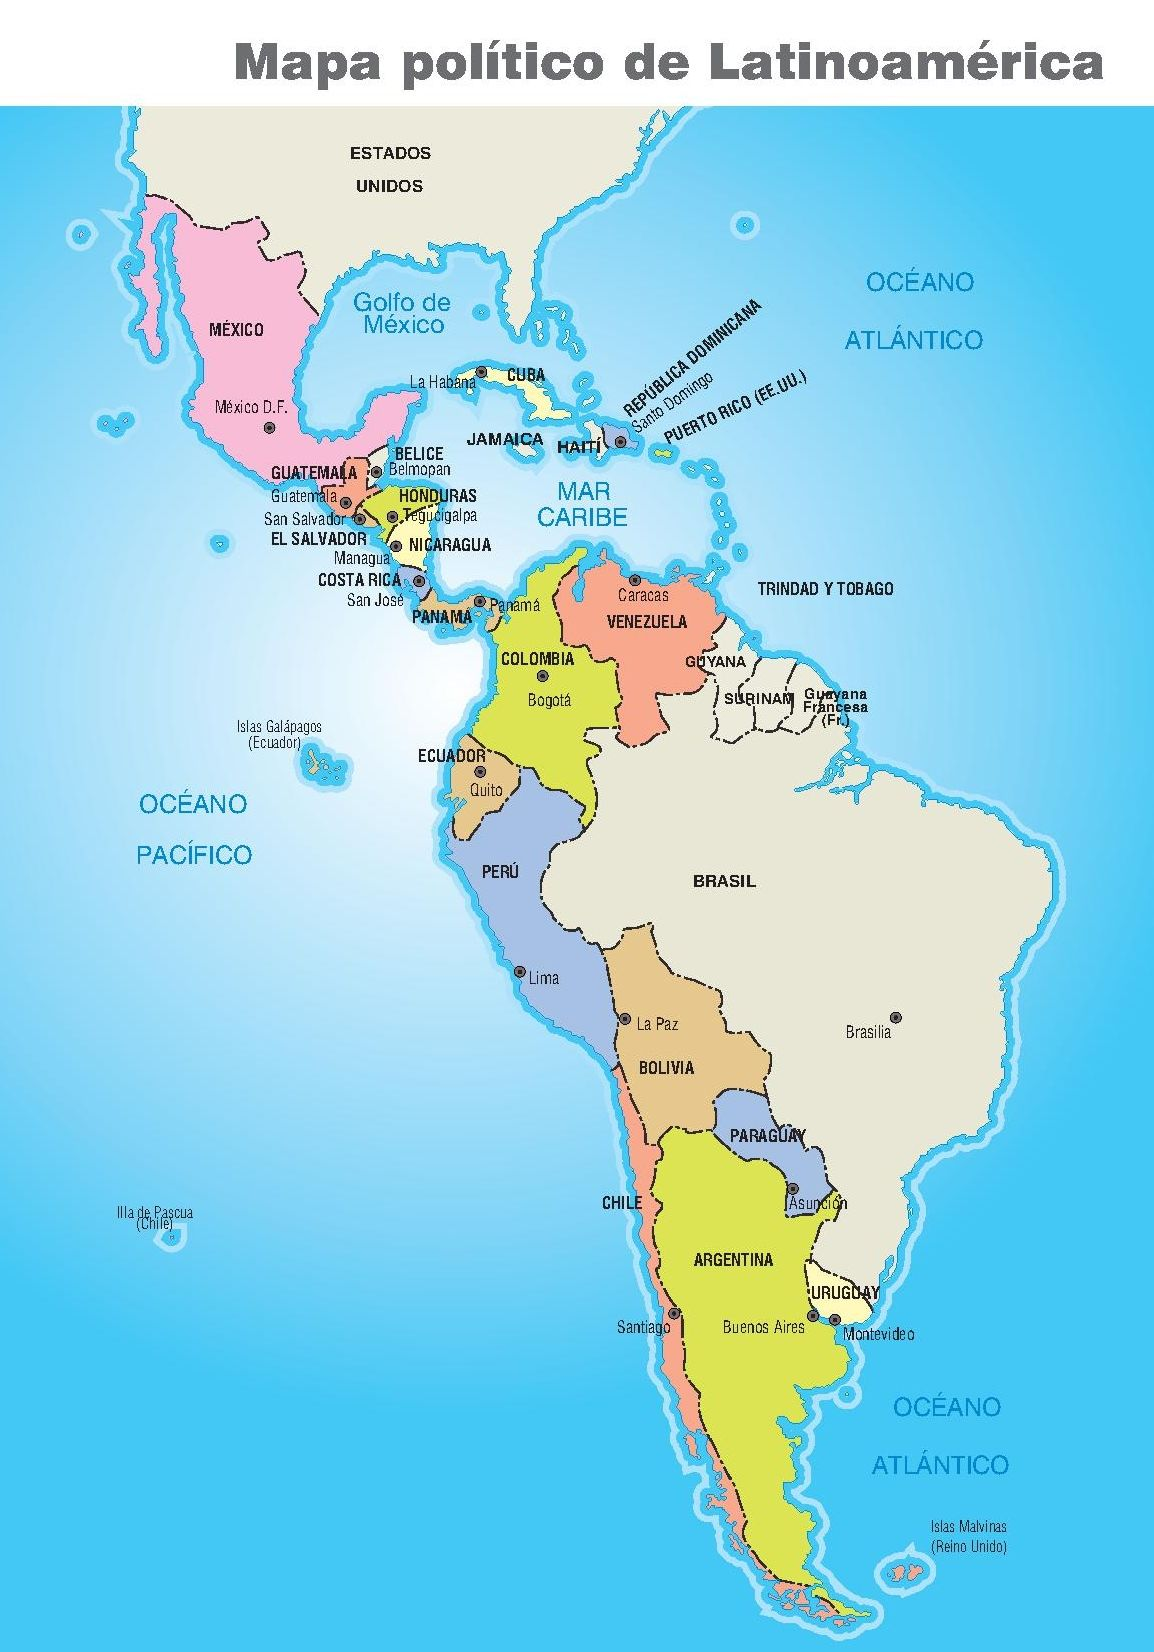 Ushuaia Argentina Map South America Pinterest South America - Mapa politico de america central juego